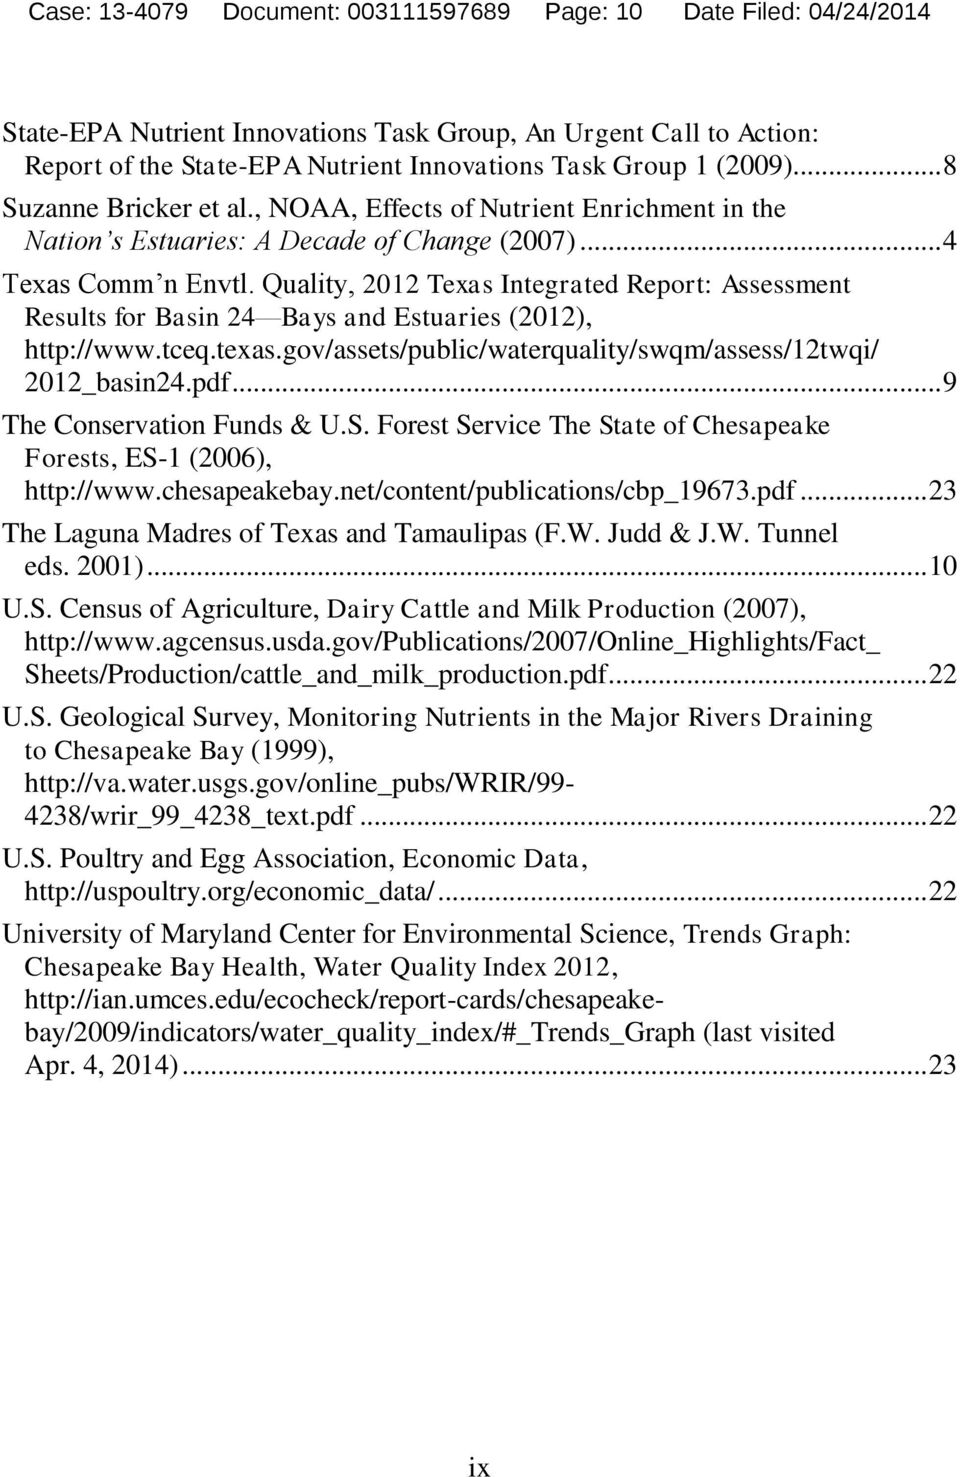 Quality, 2012 Texas Integrated Report: Assessment Results for Basin 24 Bays and Estuaries (2012), http://www.tceq.texas.gov/assets/public/waterquality/swqm/assess/12twqi/ 2012_basin24.pdf.